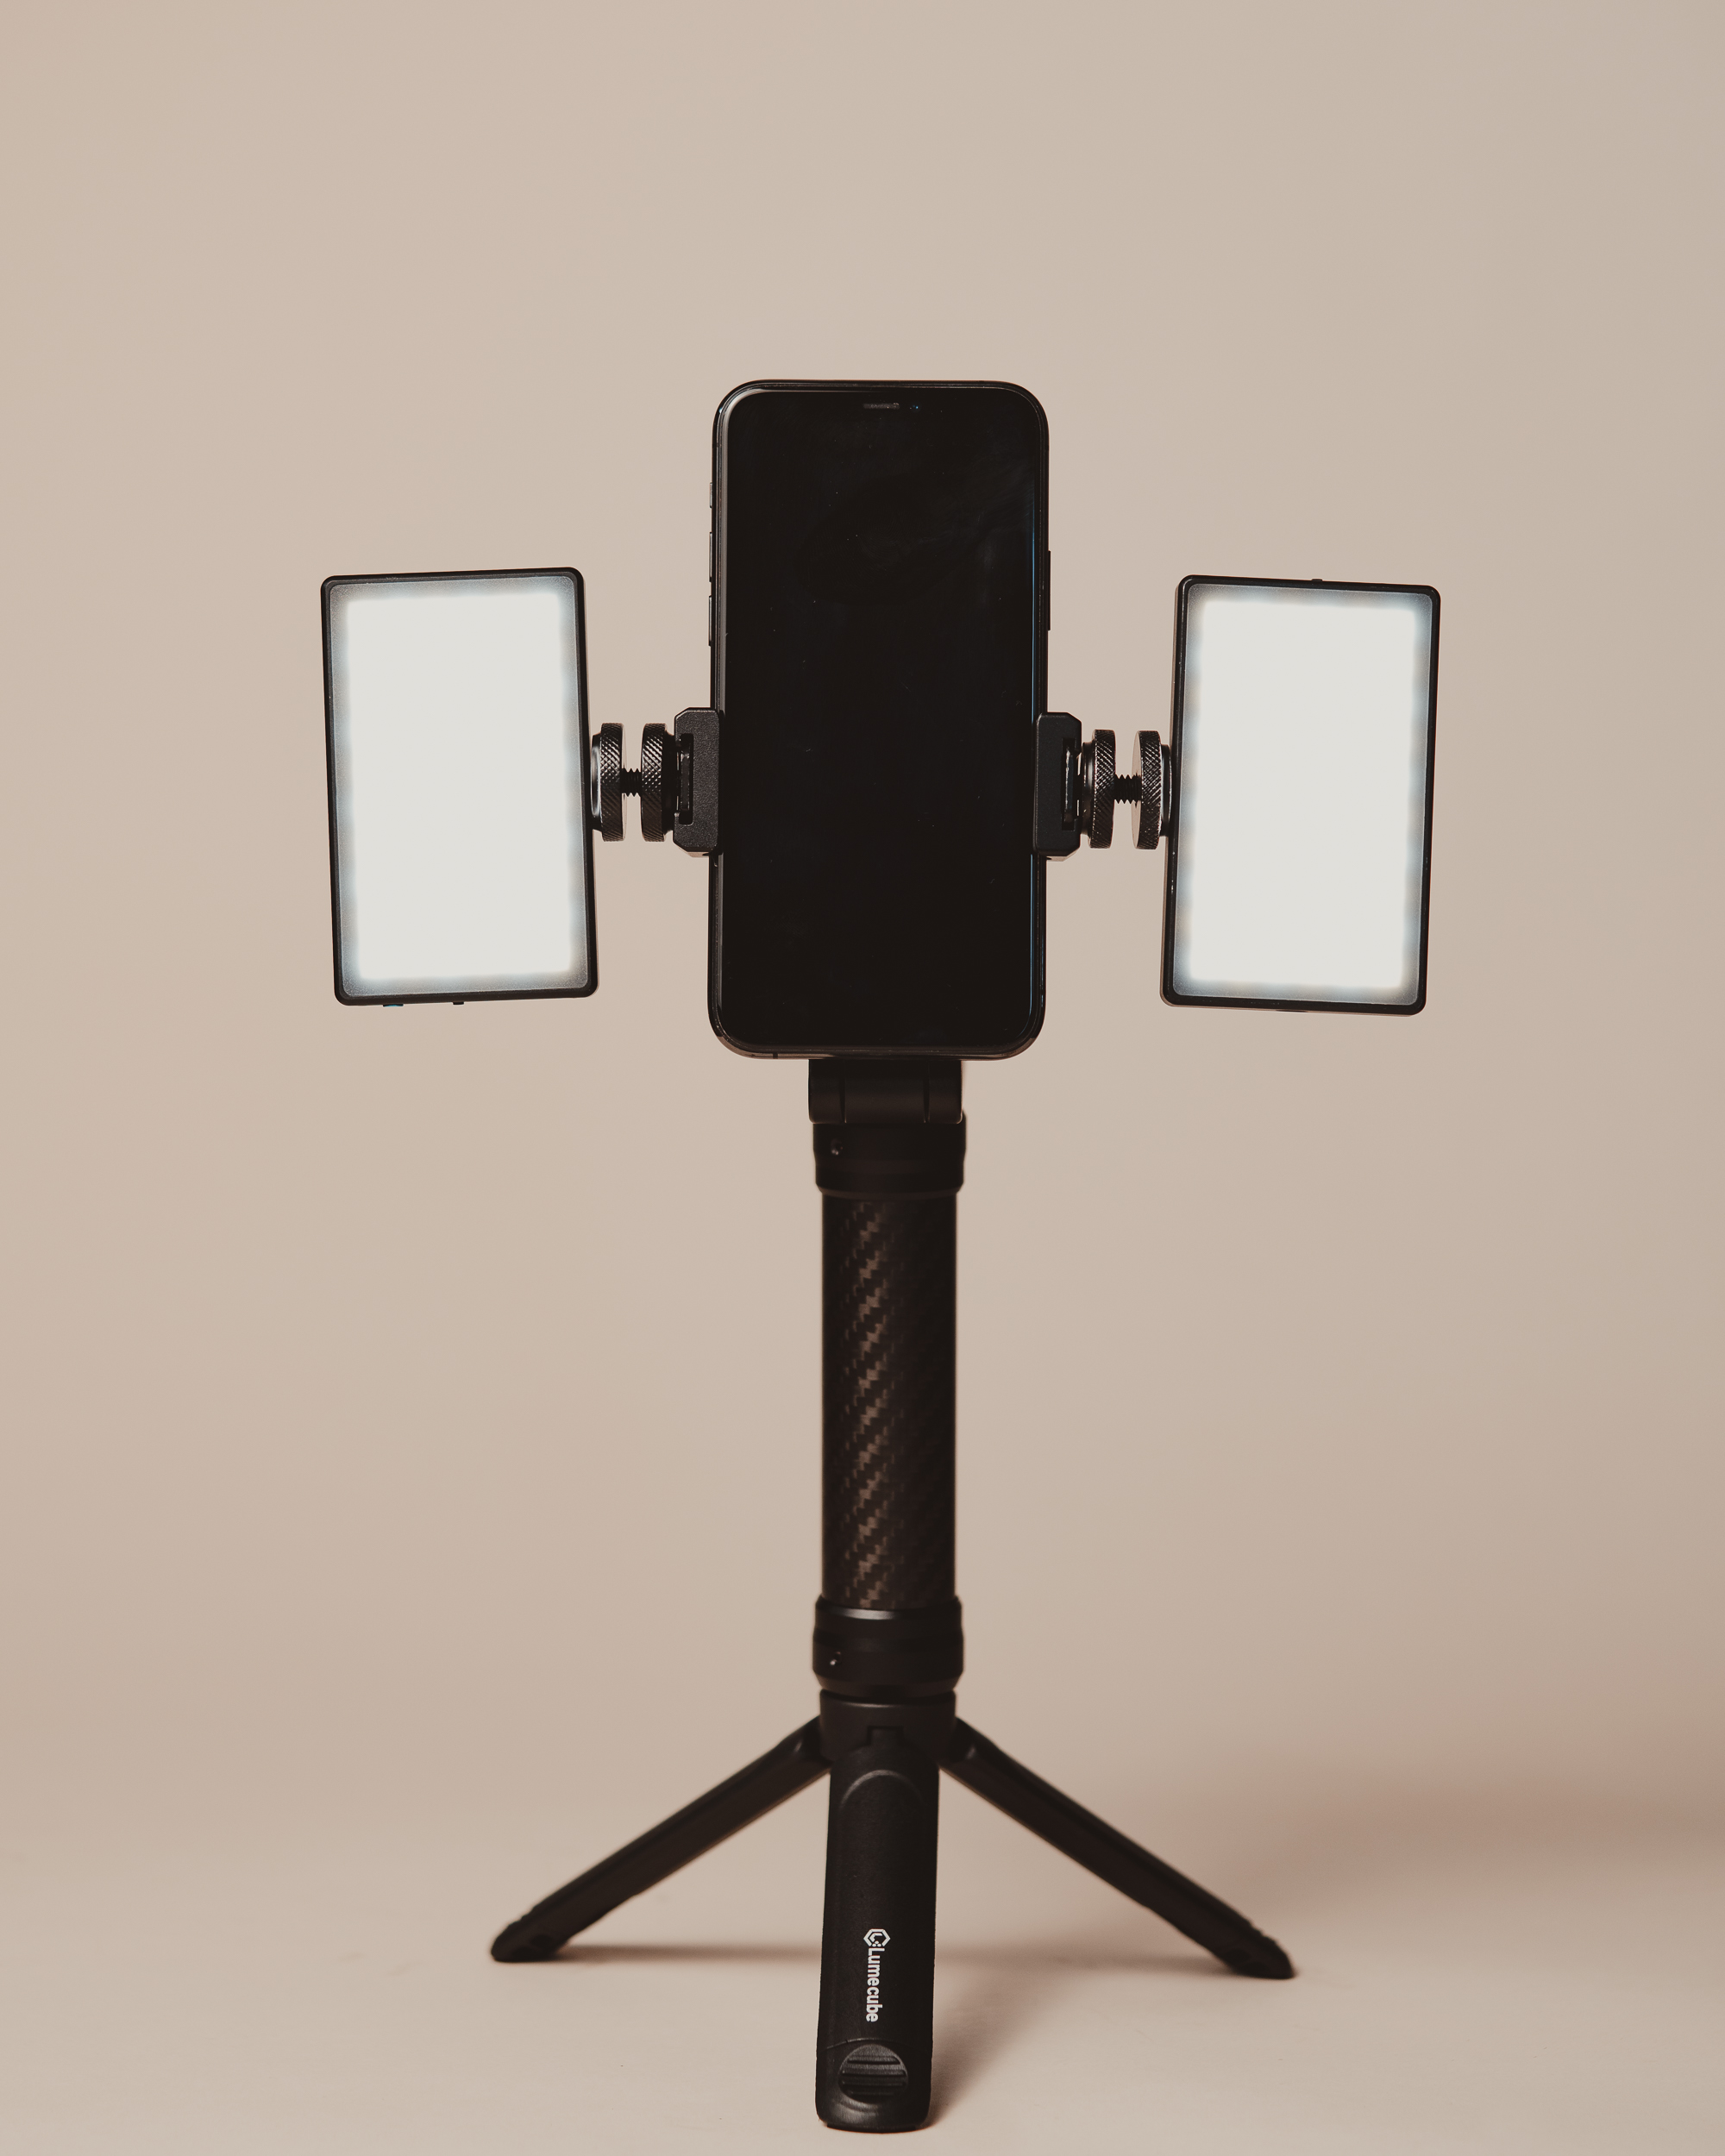 mobile creator kit with two lights